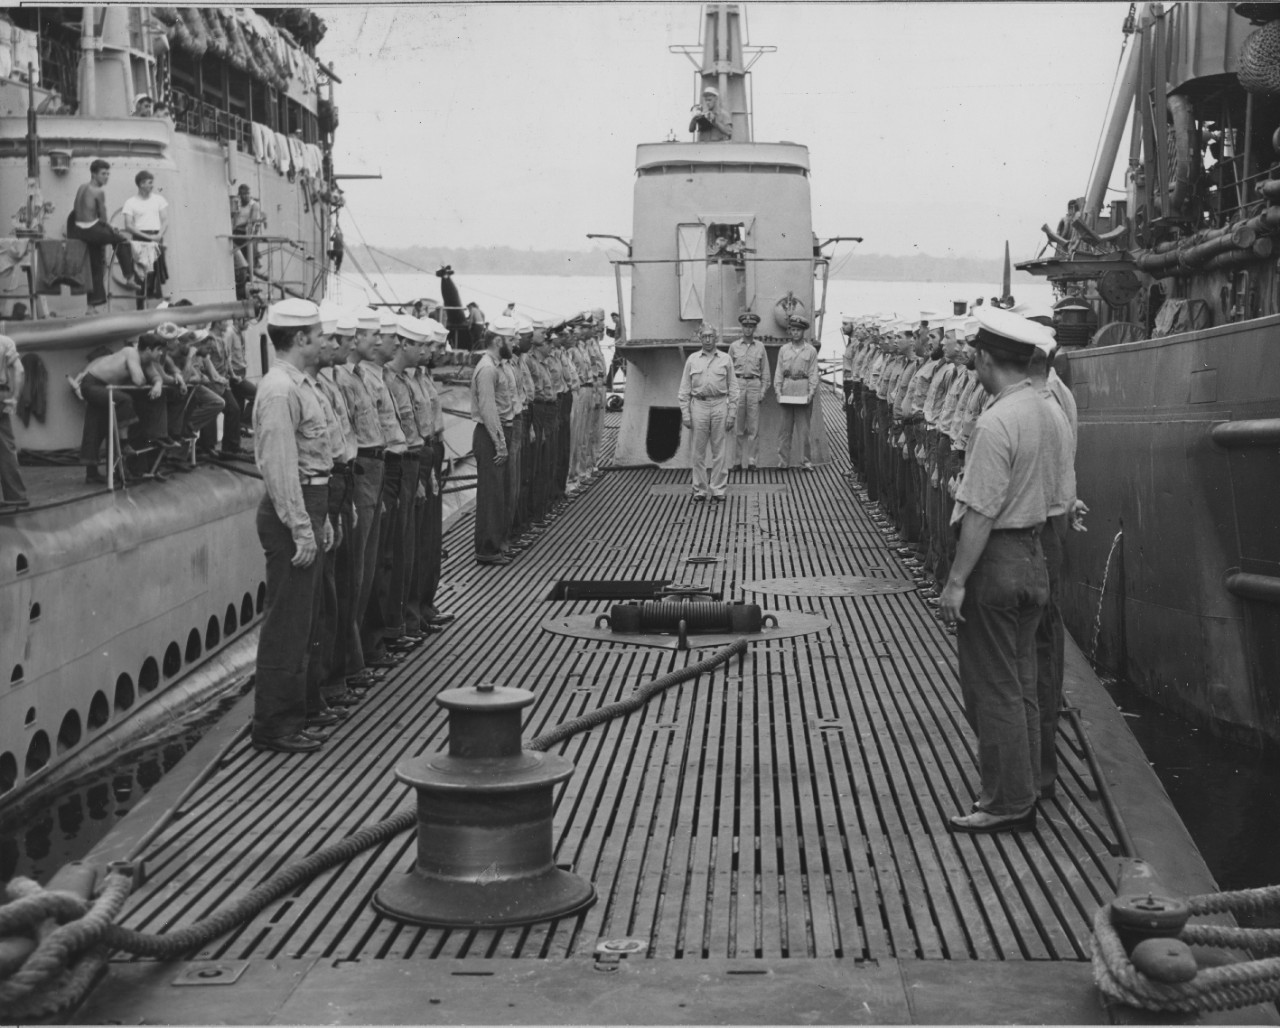 Rear Adm. James Fife addresses Blackfish's crew, standing at attention, as he provided them with their Submarine Combat Insignias, 23 December 1943. Note how the sailors on board the boat moored alongside (L) display a more casual onlooker's stance. Also note photographer readying his camera on Blackfish's bridge. (U.S. Navy Photograph 80-G-394429, National Archives and Records Administration, Still Pictures Division, College Park, Md.)